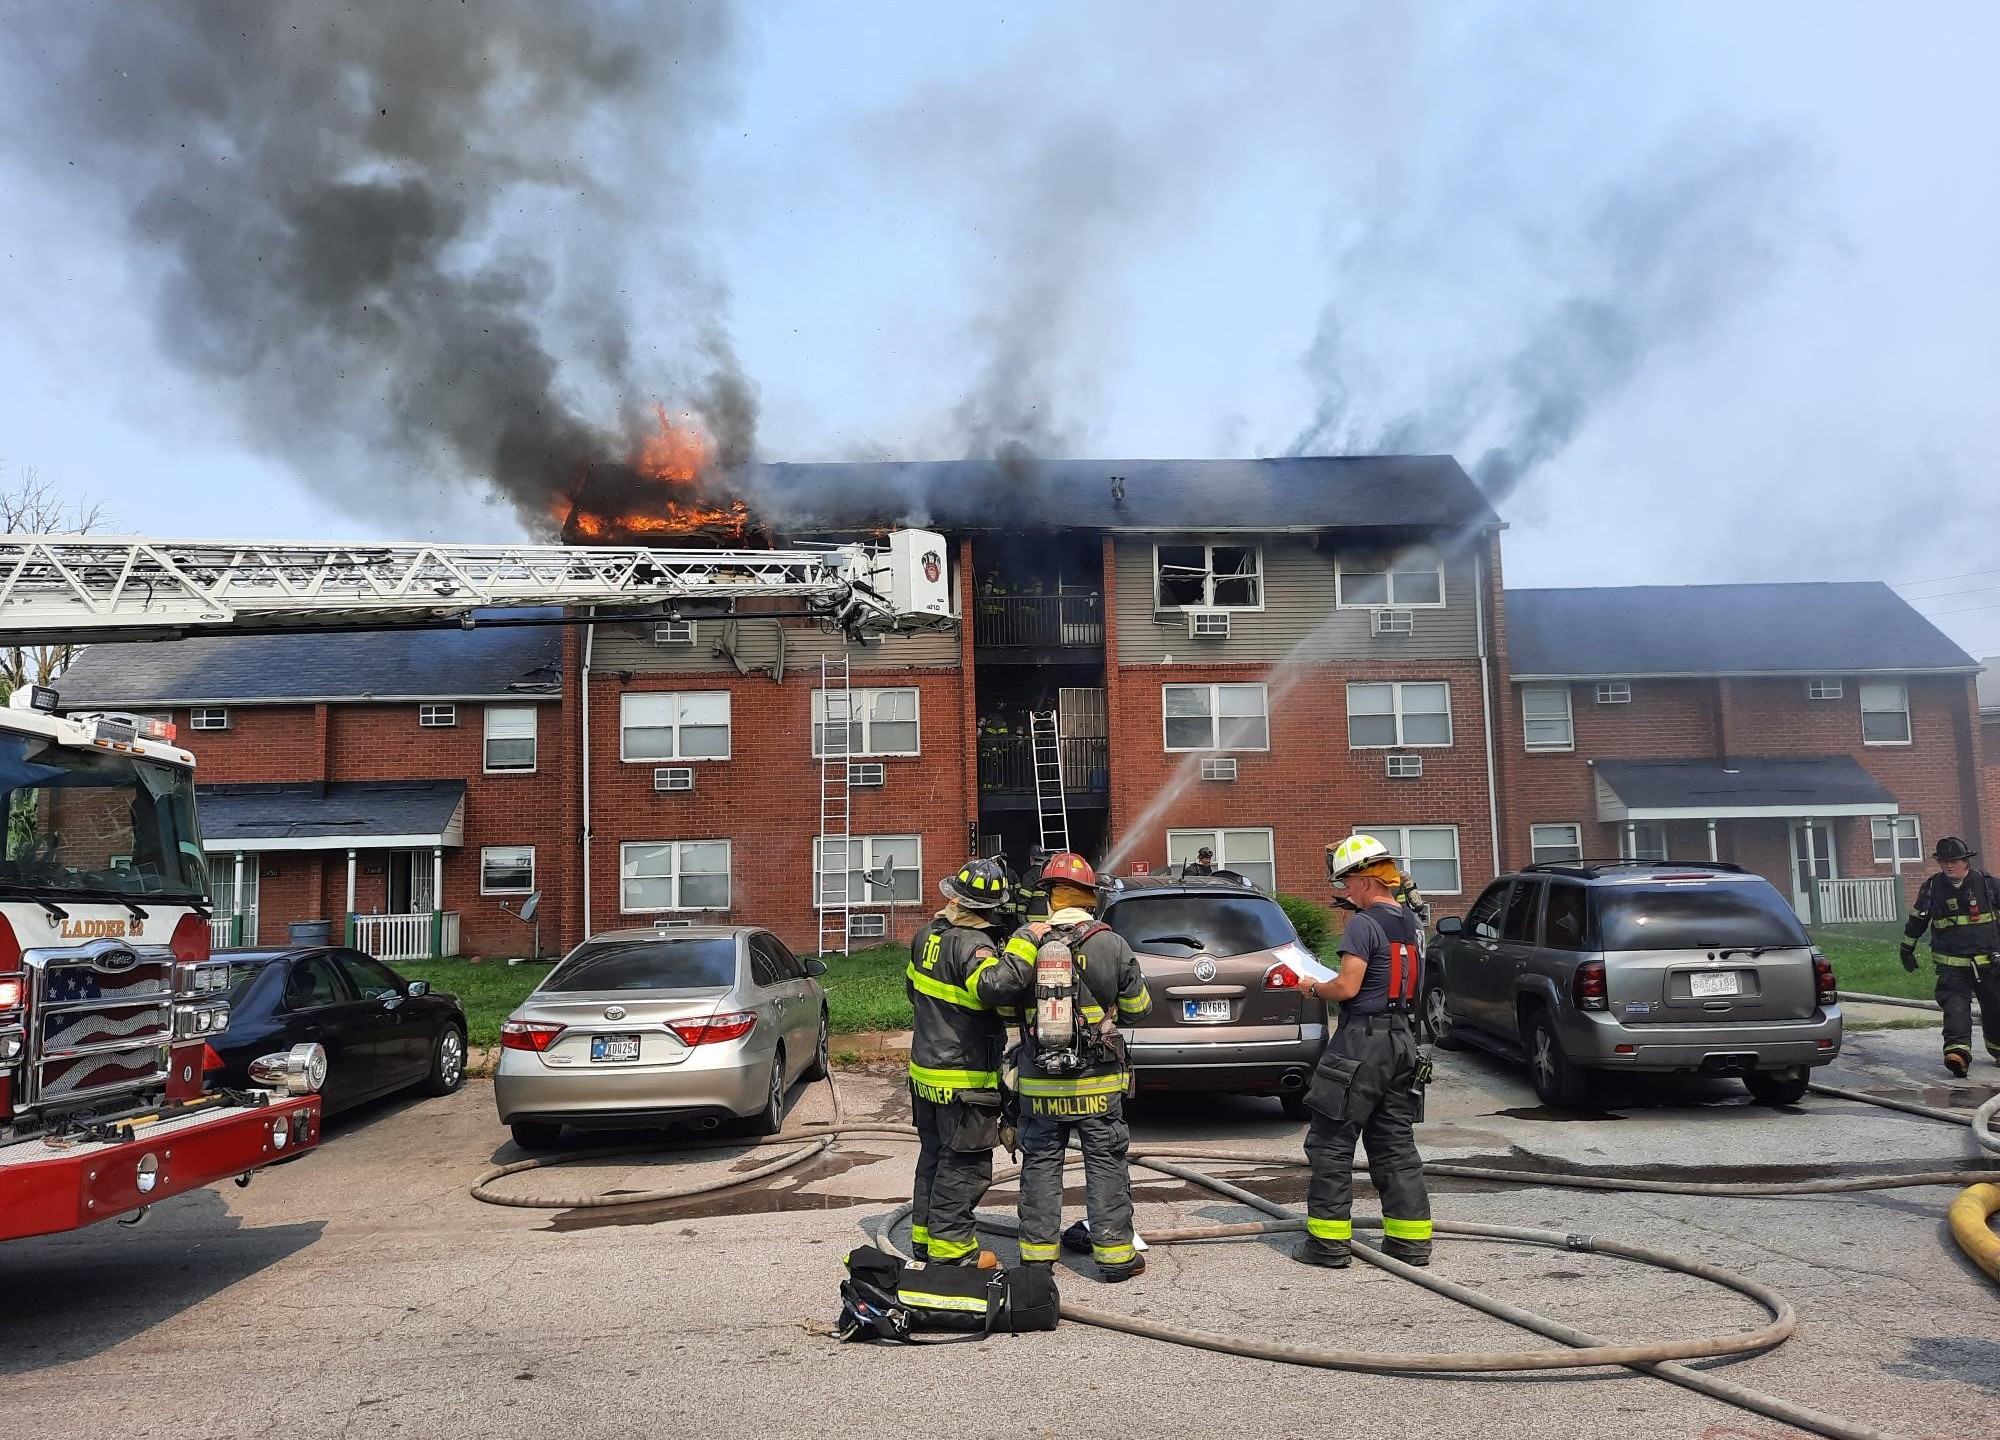 68-year-old Indianapolis man jumps out third story window to escape apartment fire